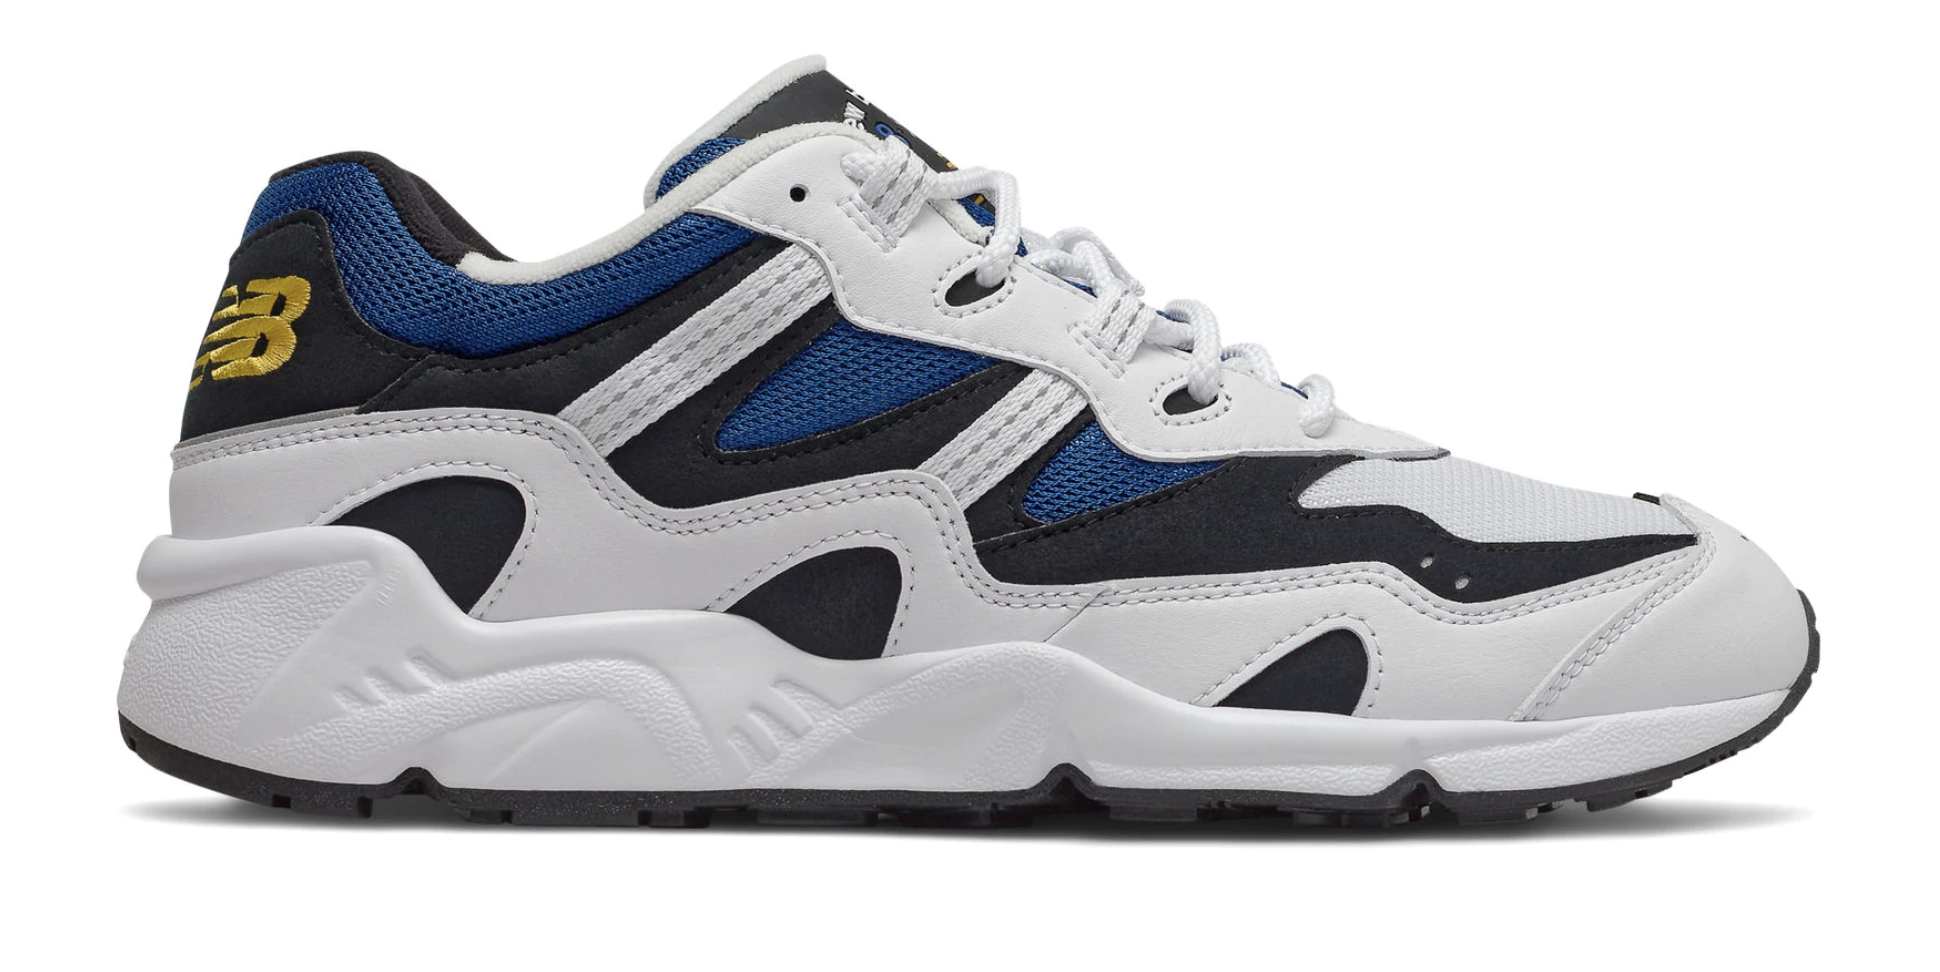 the best cheap sneakers